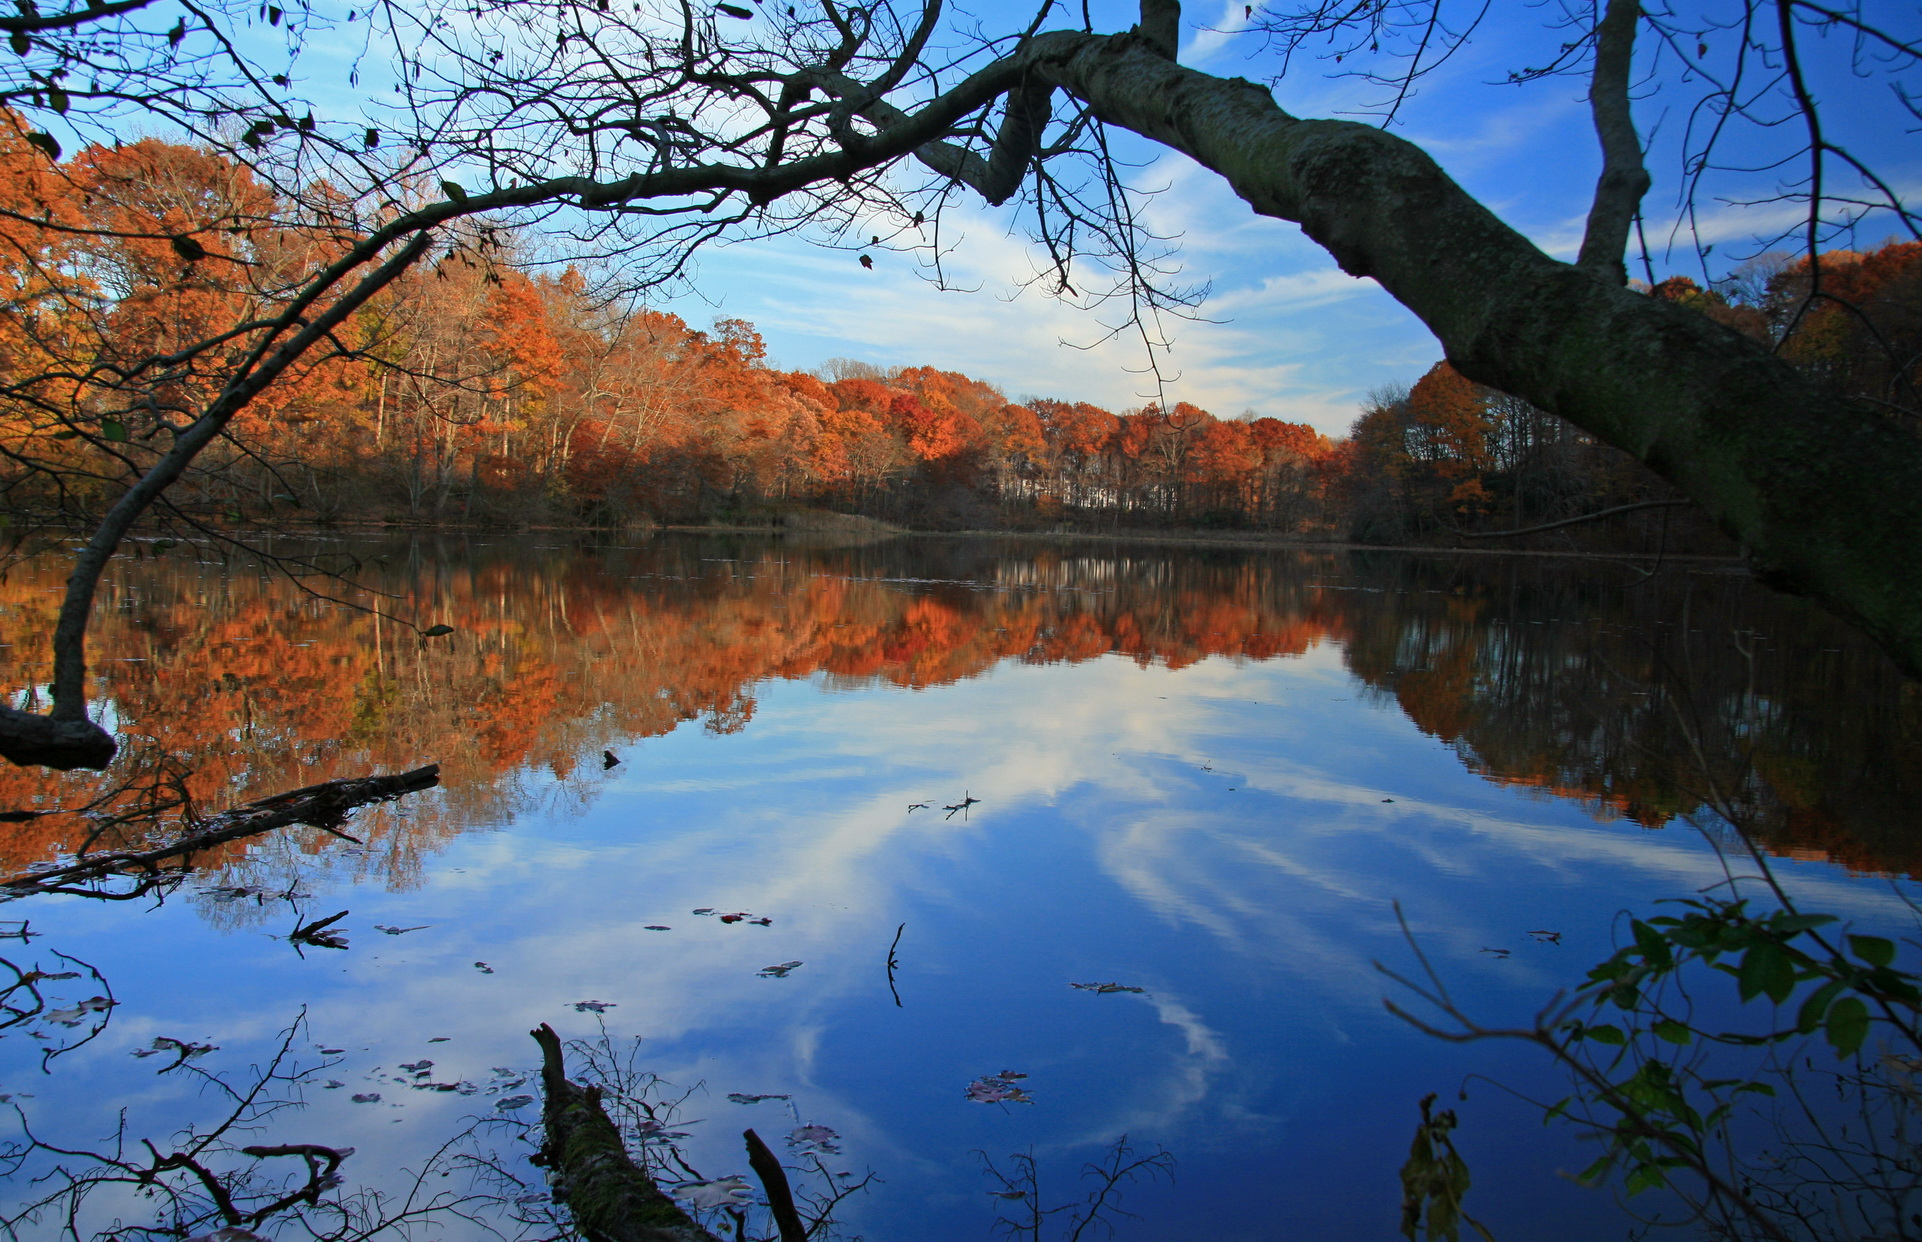 Crystal lake park burlington county nj official website for Fishing lakes in nj